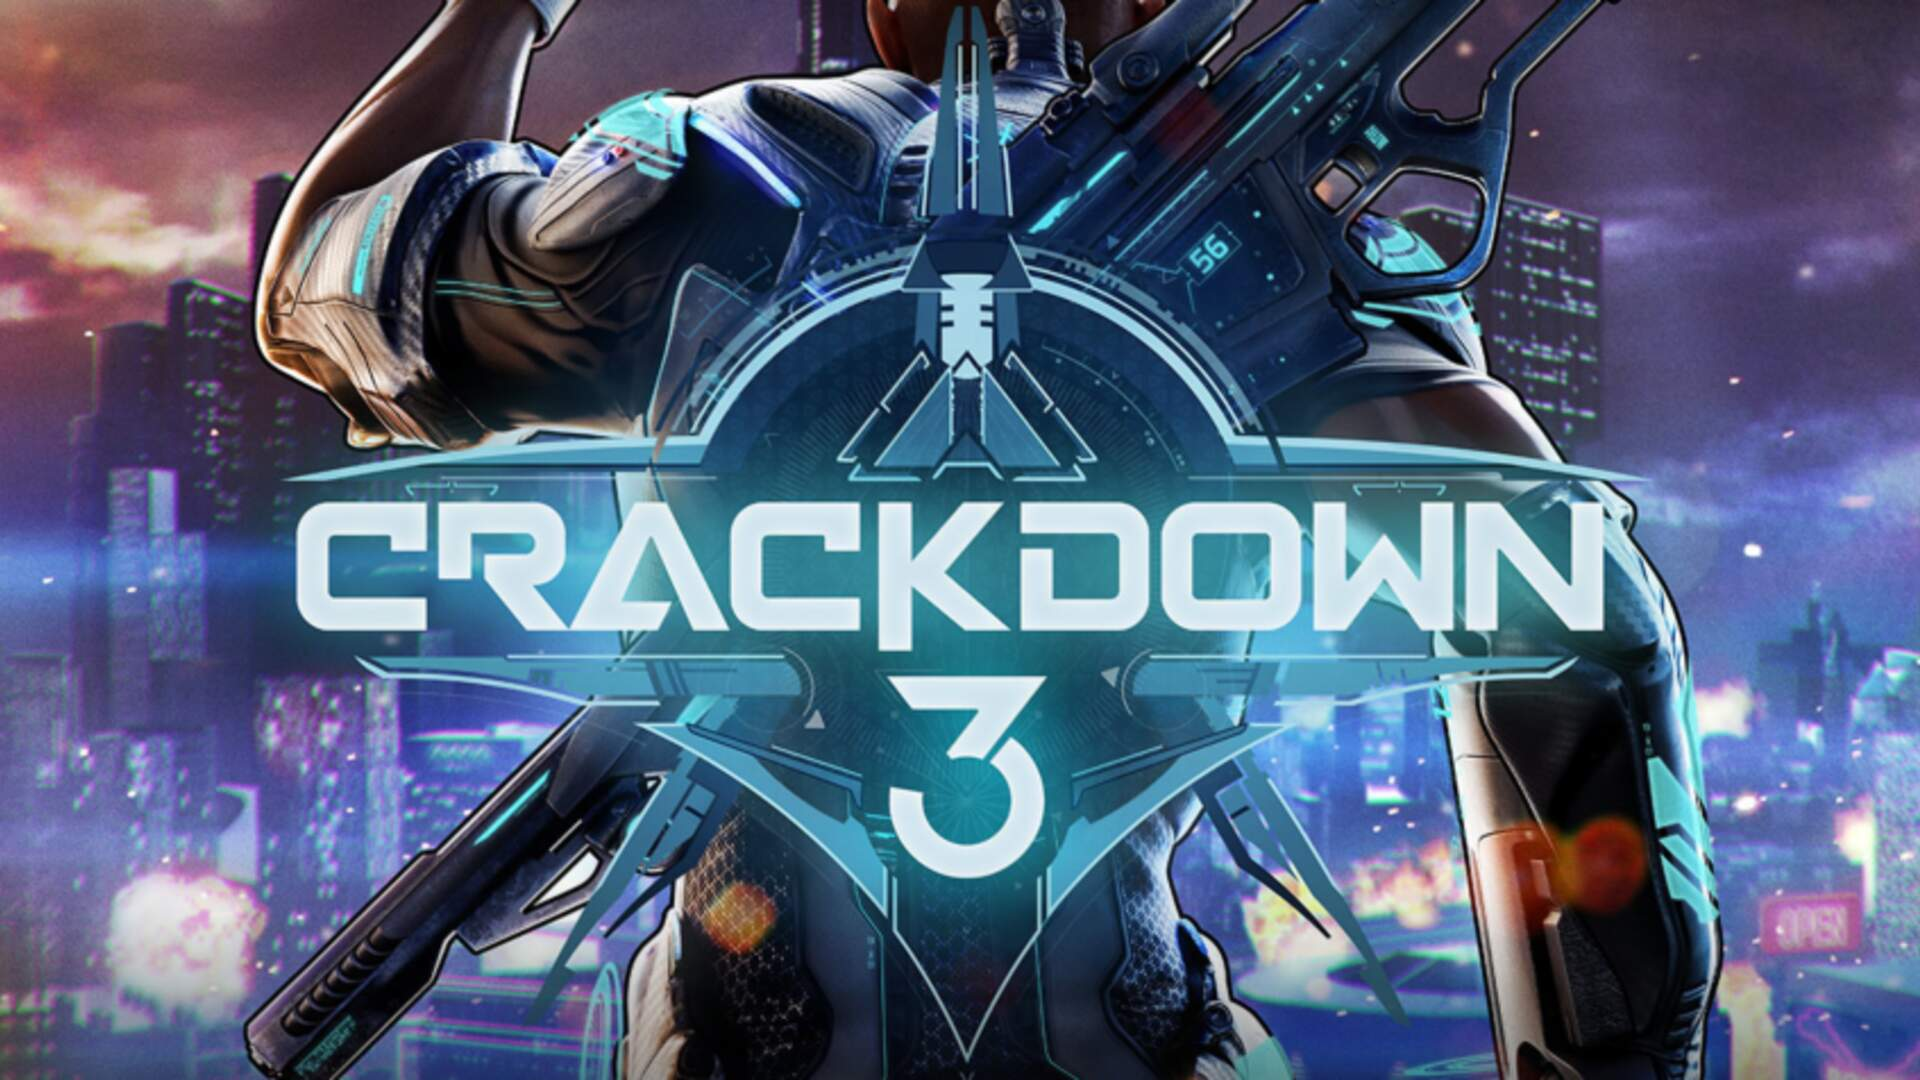 Crackdown 3 Developer Sumo Digital Doesn't Want a Repeat of Crackdown 2